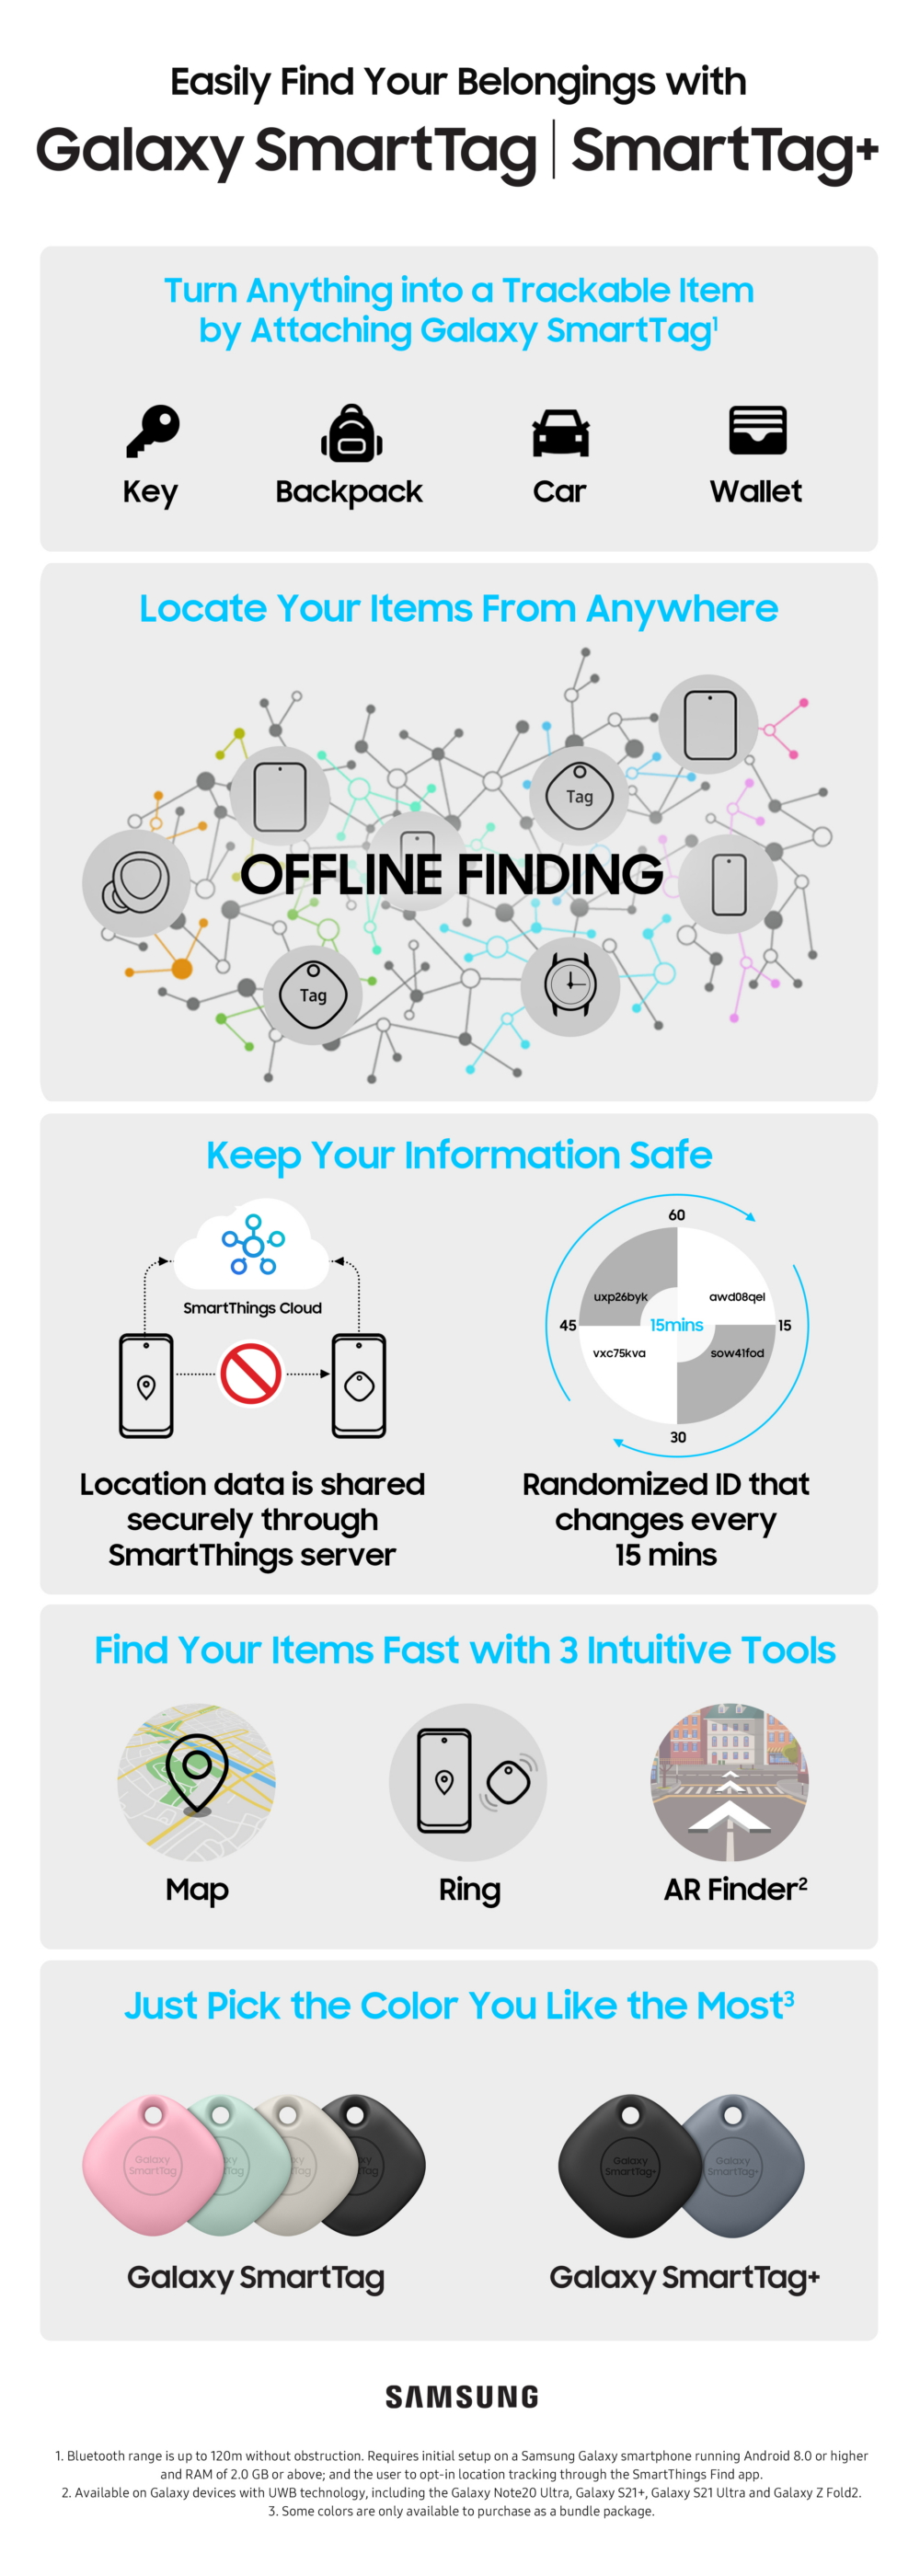 Introducing the New Galaxy SmartTag+: The Smart Way To Find Lost Items - Image 1